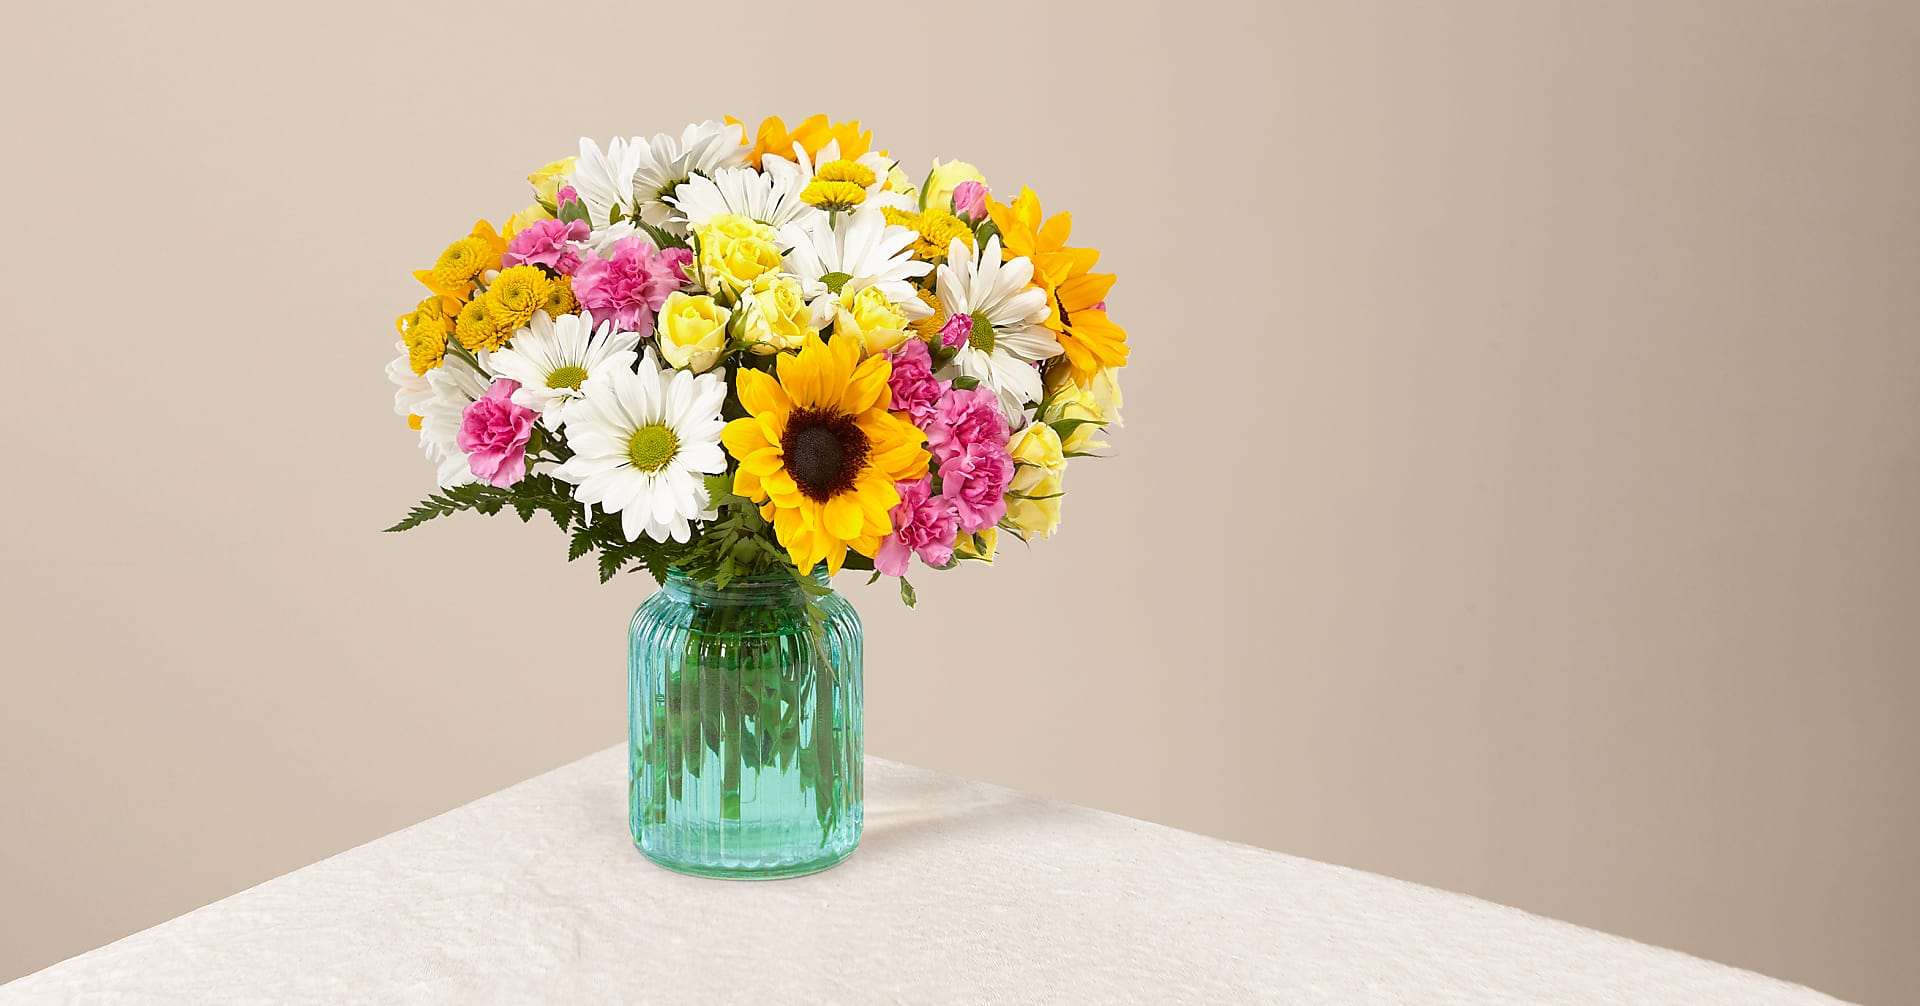 Sunlit Meadows Bouquet - Image 1 Of 4